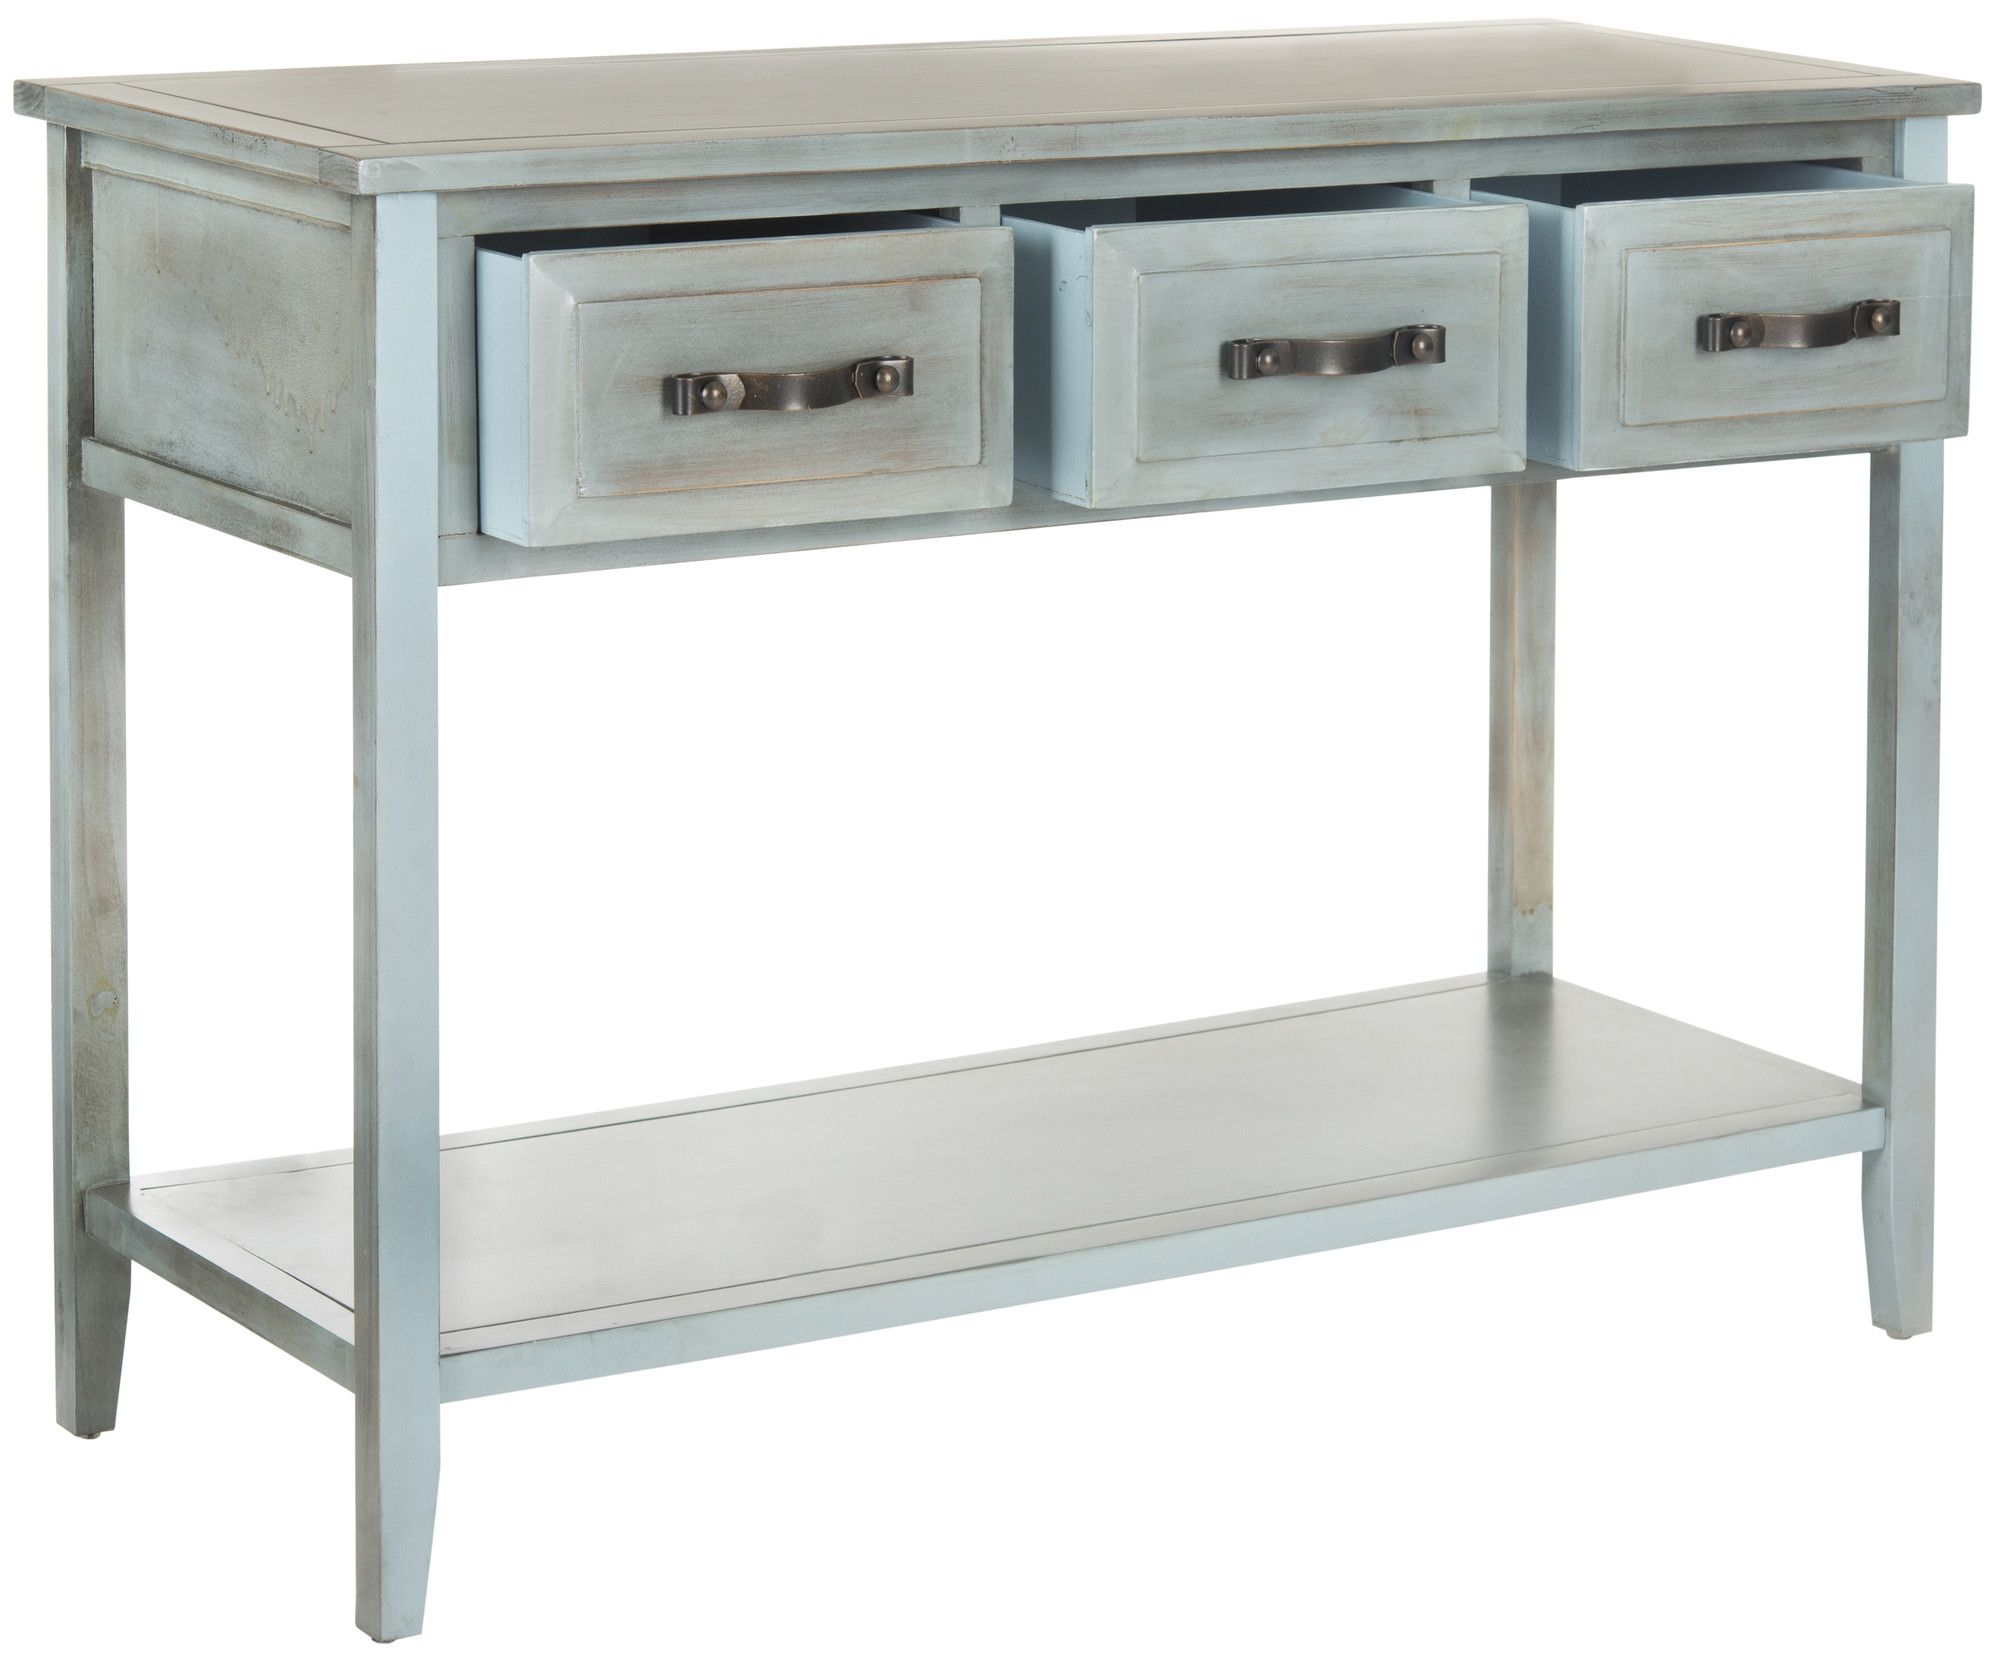 Astonishing Arsenault Urban Console Table Gray Console Table Console Ocoug Best Dining Table And Chair Ideas Images Ocougorg